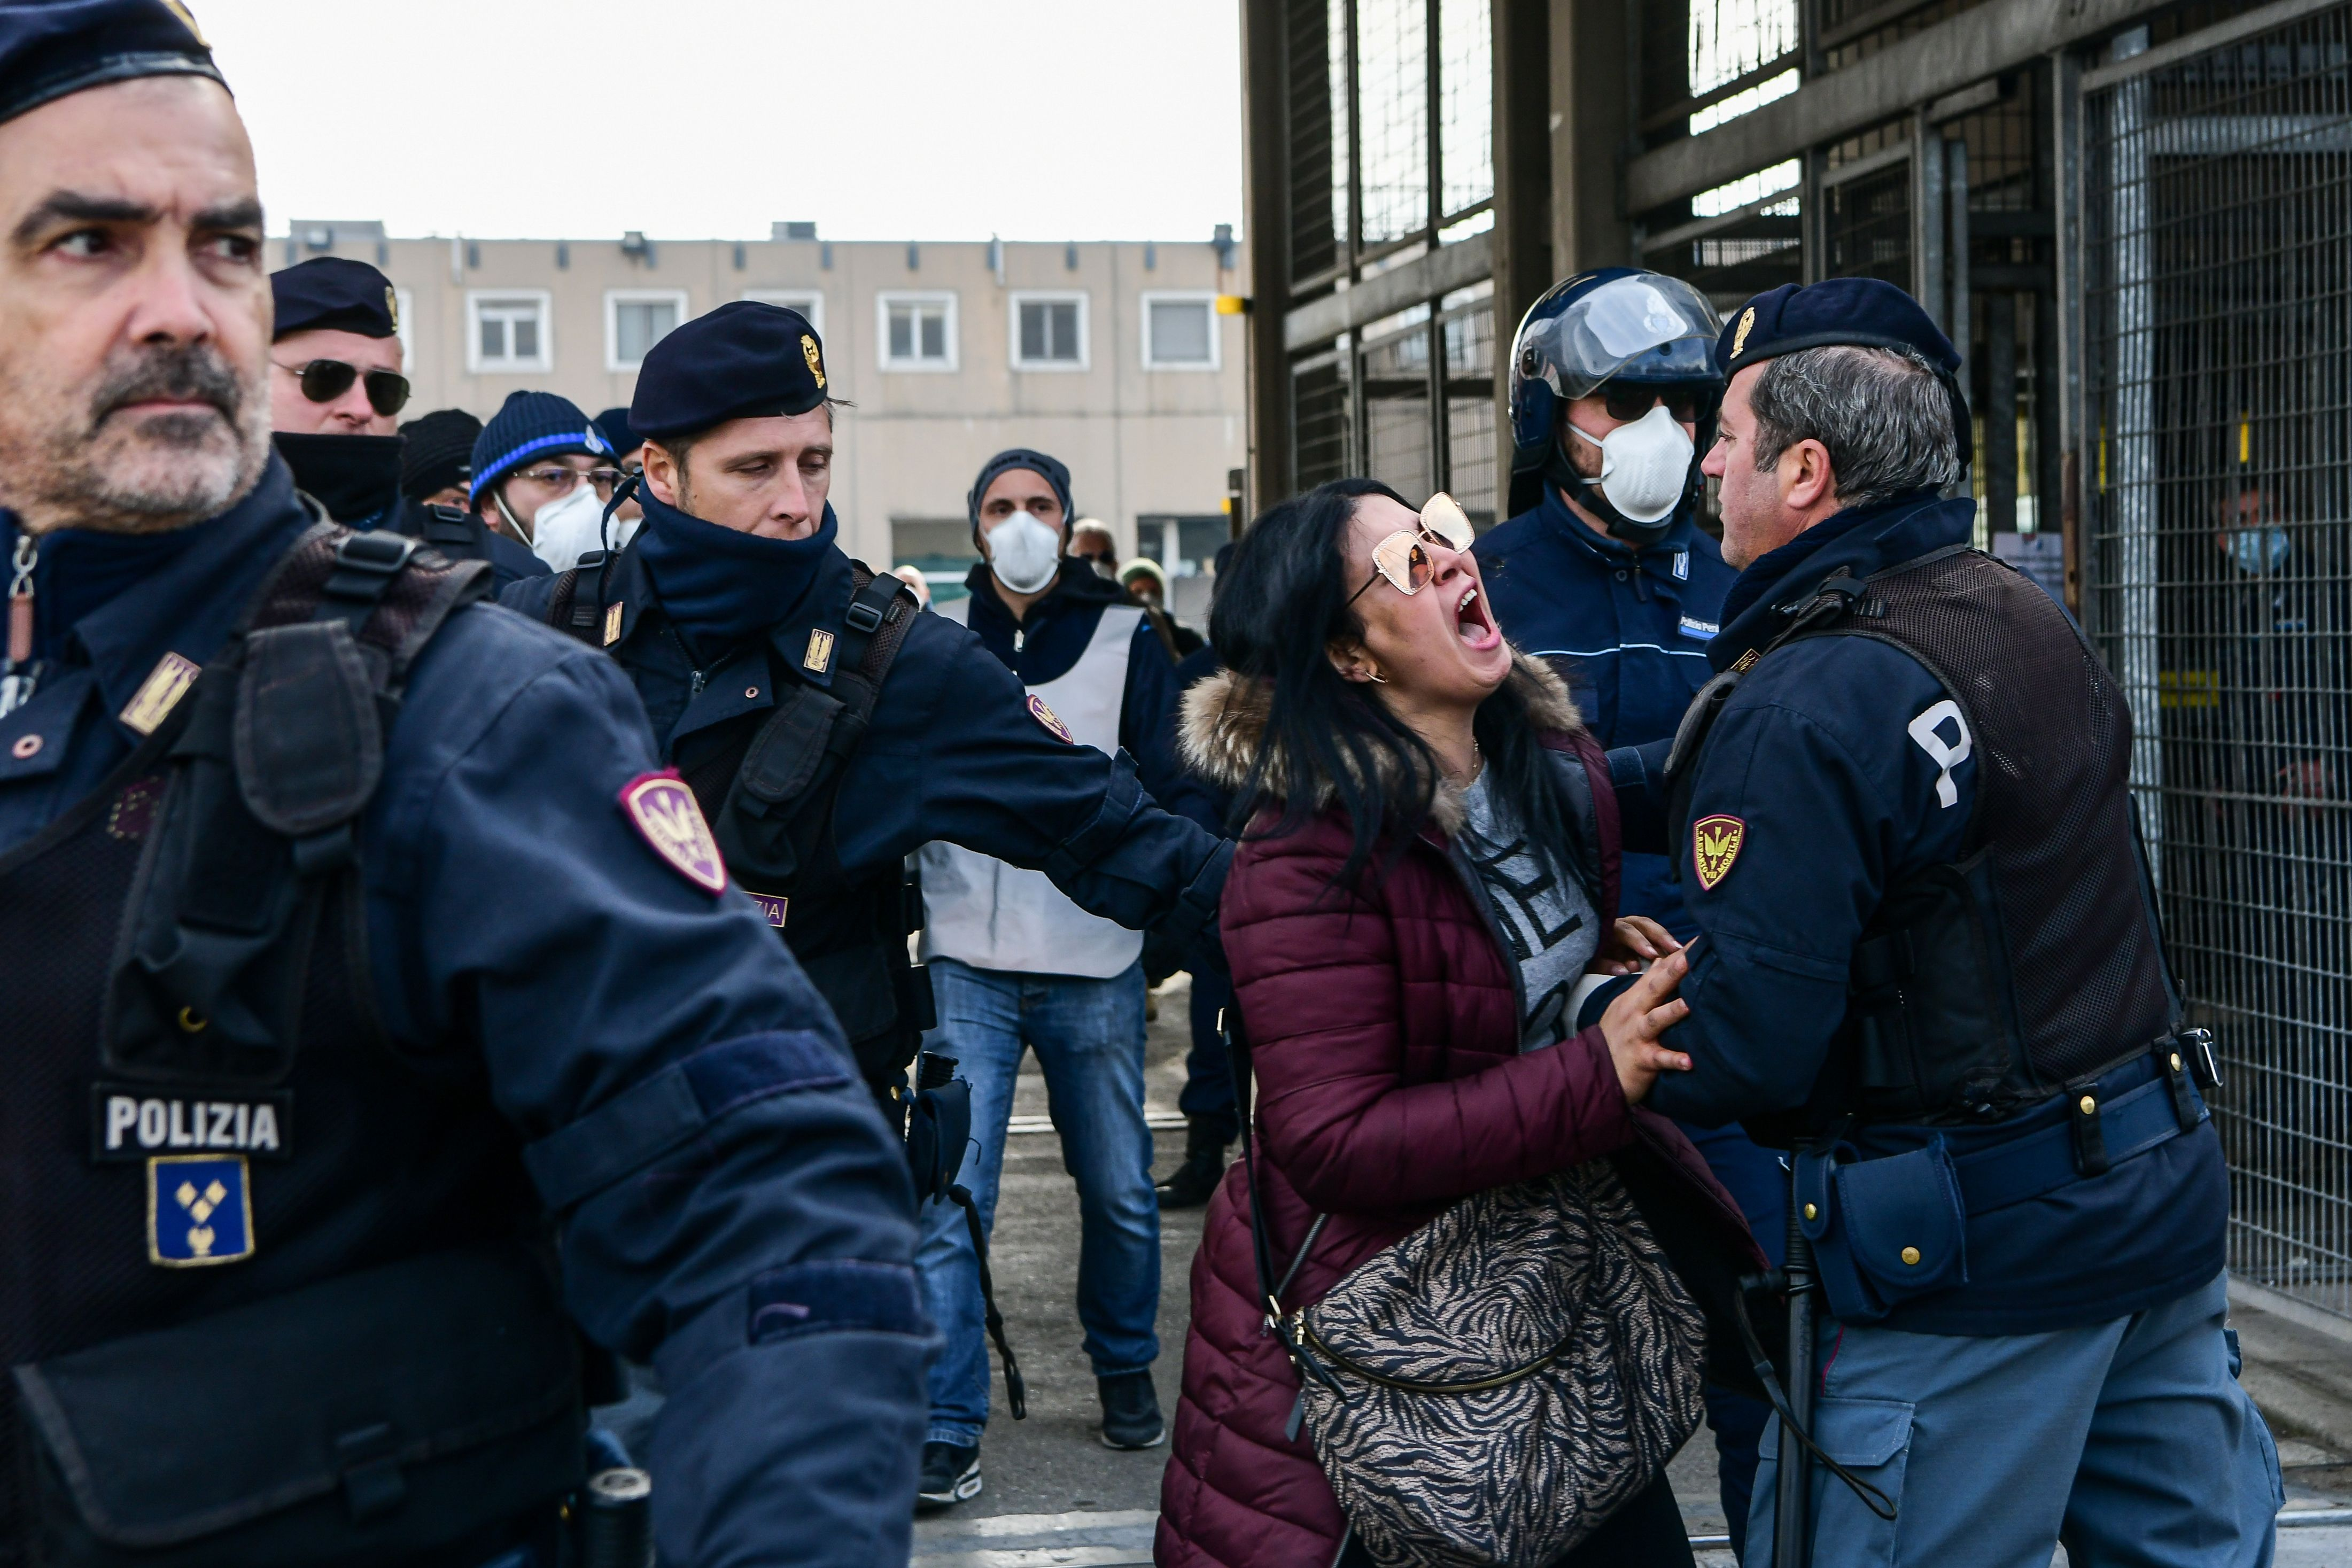 Police officers hold off an inmate's relative shouting in protest outside the SantAnna prison in Modena, Emilia-Romagna, in one of Italy's quarantine red zones on March 9, 2020. (PIERO CRUCIATTI/AFP via Getty Images)